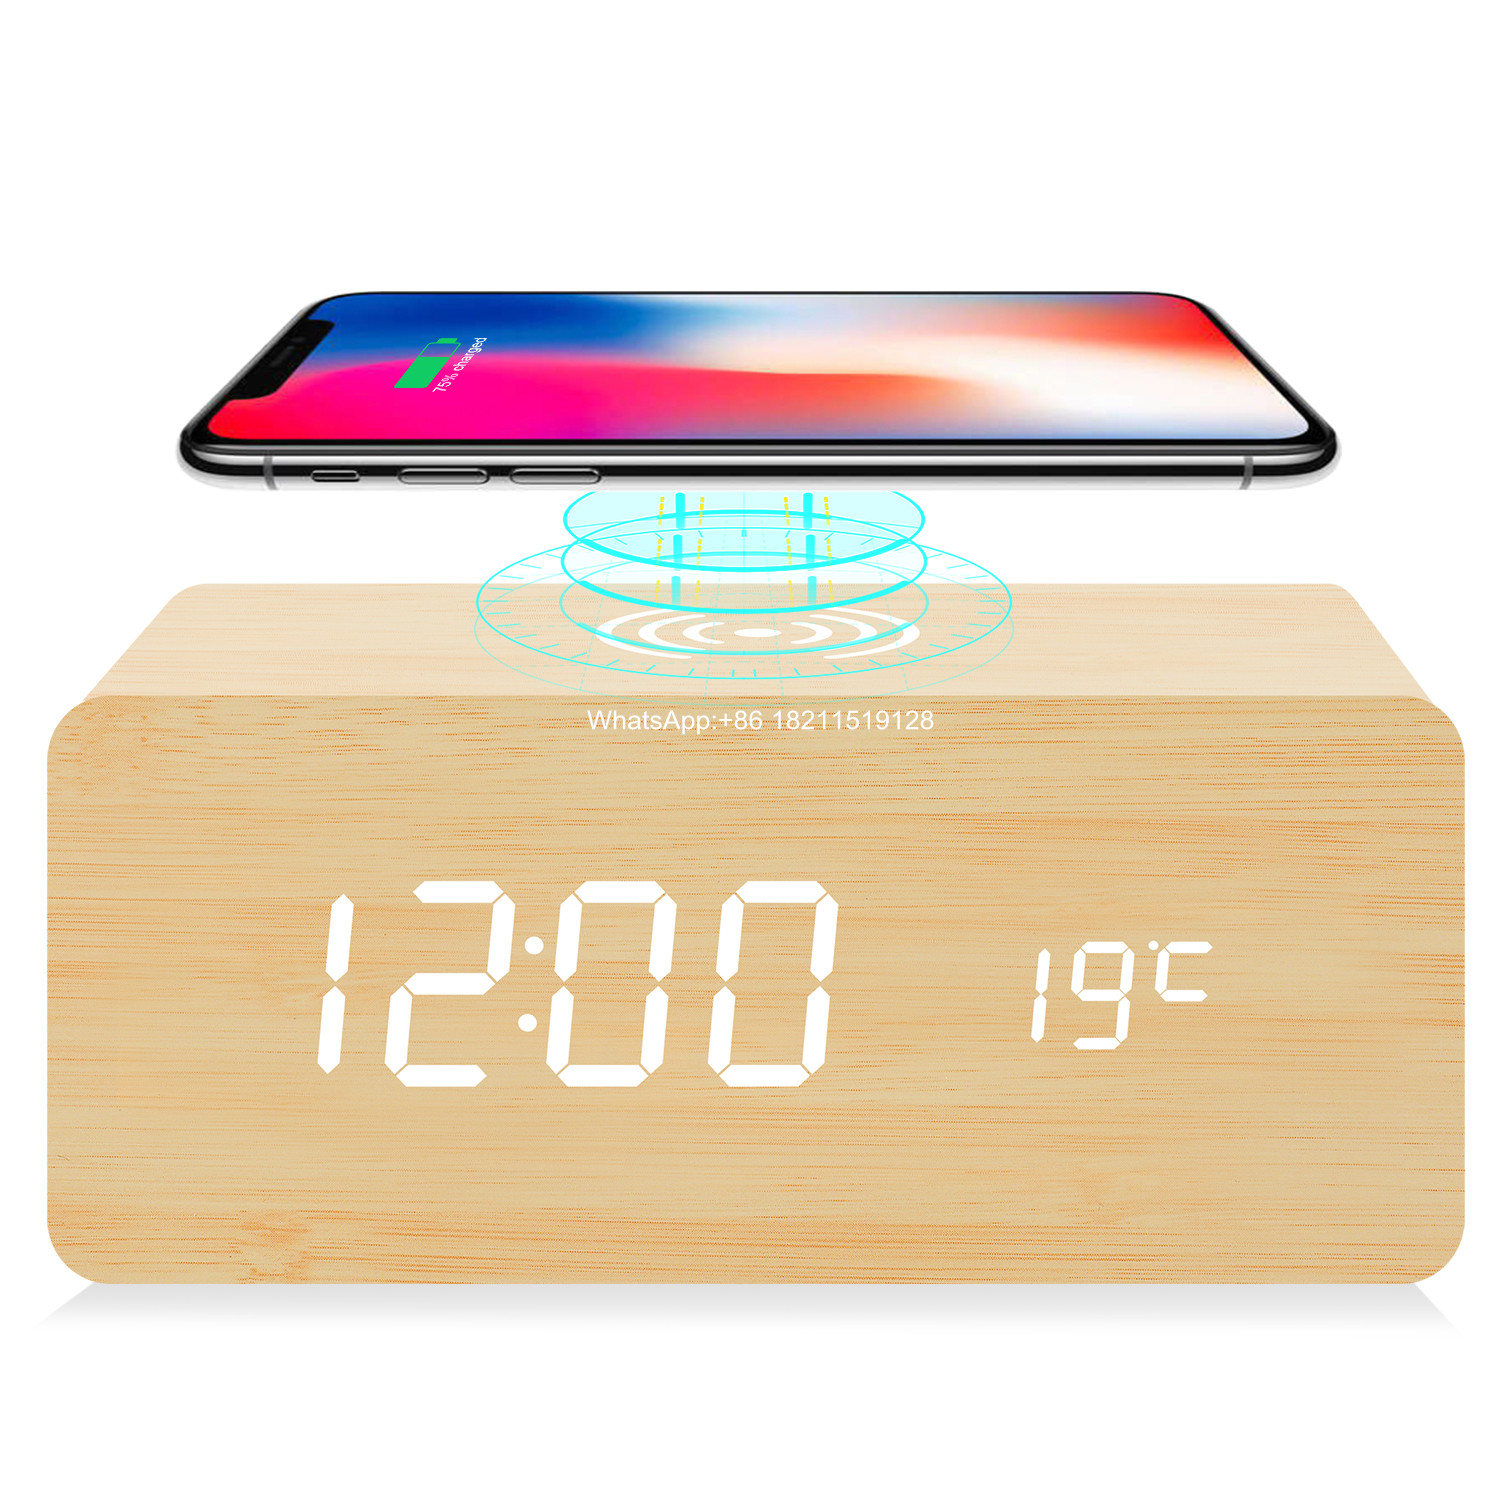 2020 New Desk Wireless Charger Digital Wooden Alarm Clock With Temperature Display